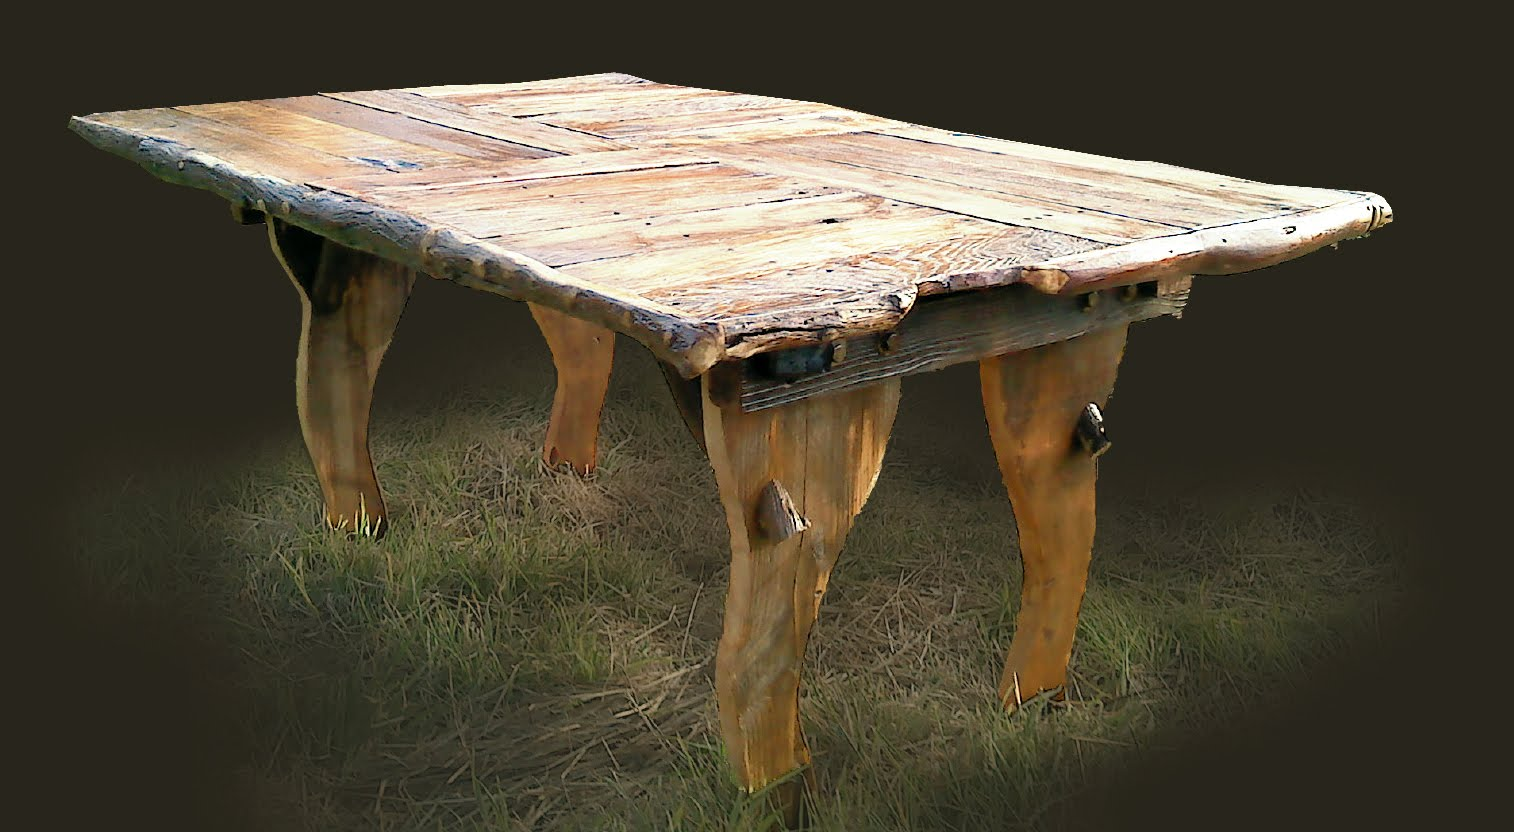 Viking ox table bardo artblog for What is table in html